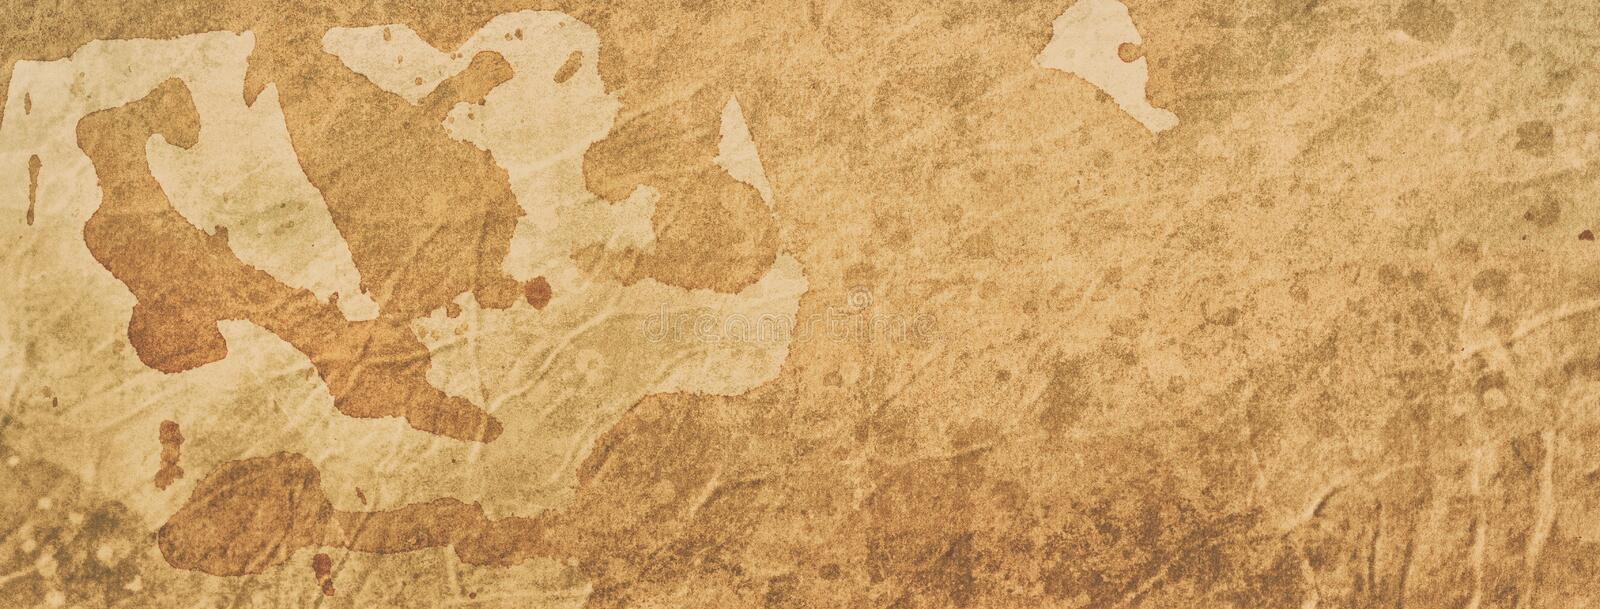 Old coffee or tea stained paper background illustration with texture and grunge, vintage or ancient parchment royalty free stock photography